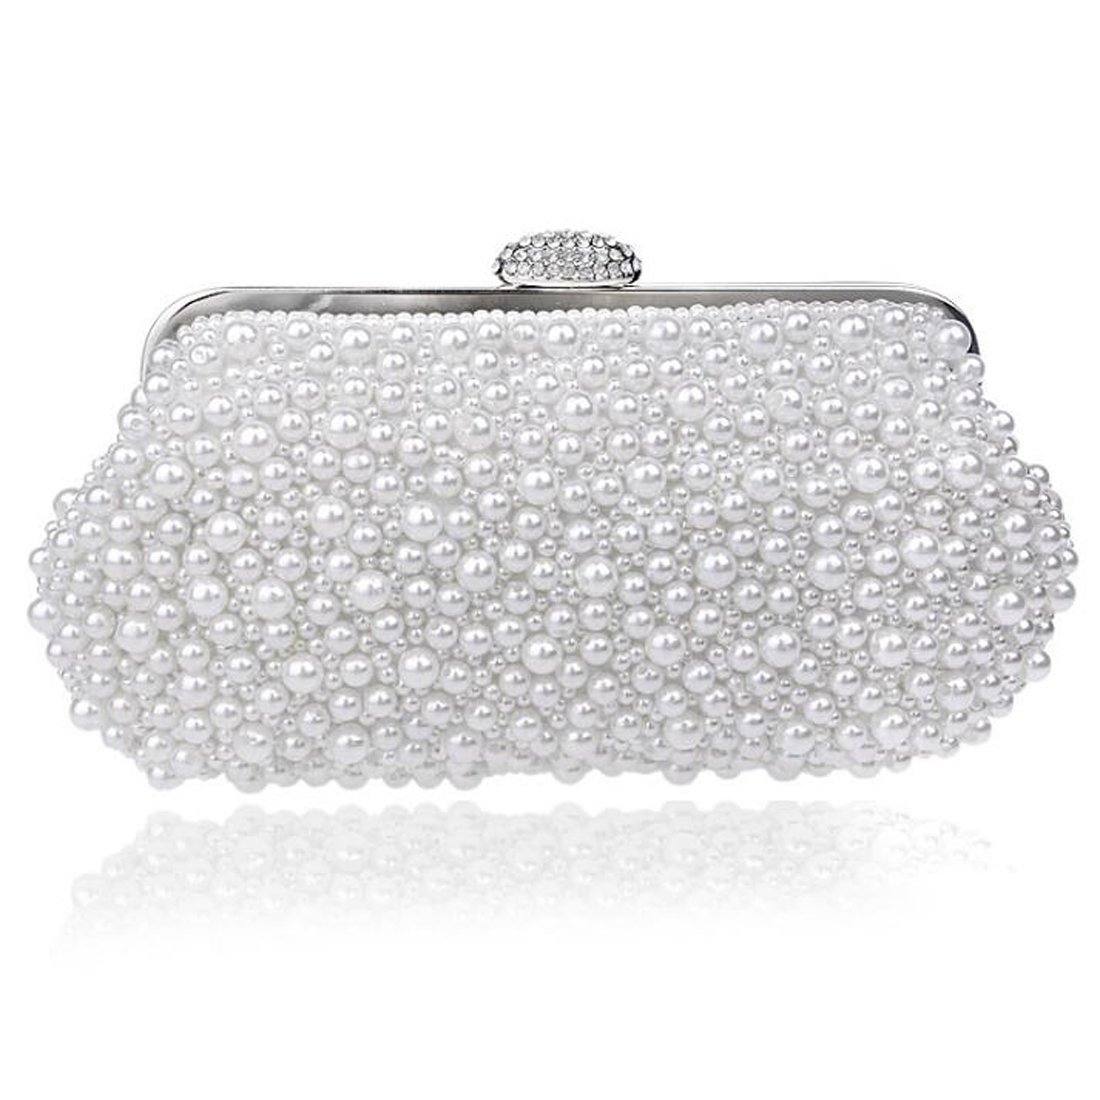 EPLAZA Women Pearl Beaded Evening Clutch Handbags Wedding Party Bags Purse (white)